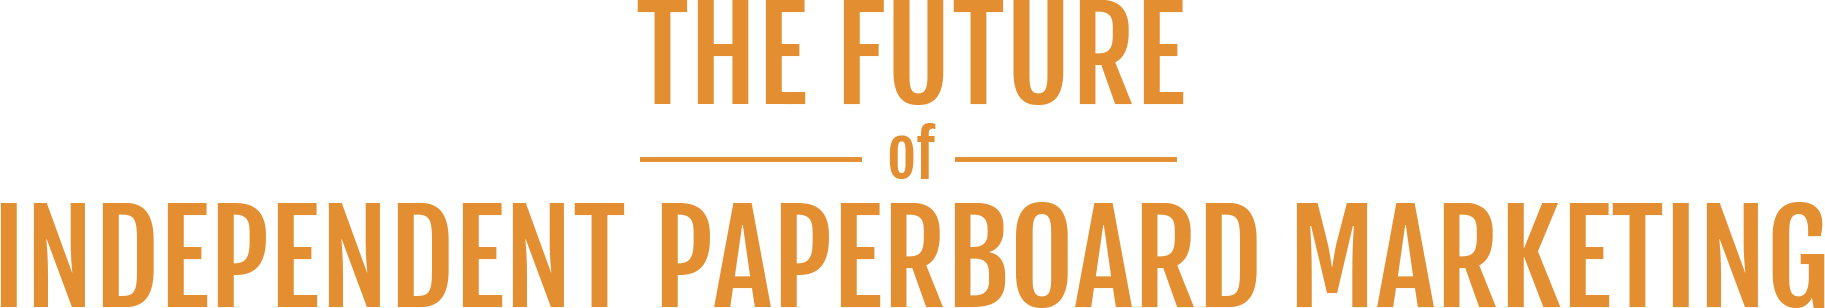 THE FUTURE of INDEPENDENT PAPERBOARD MARKETING